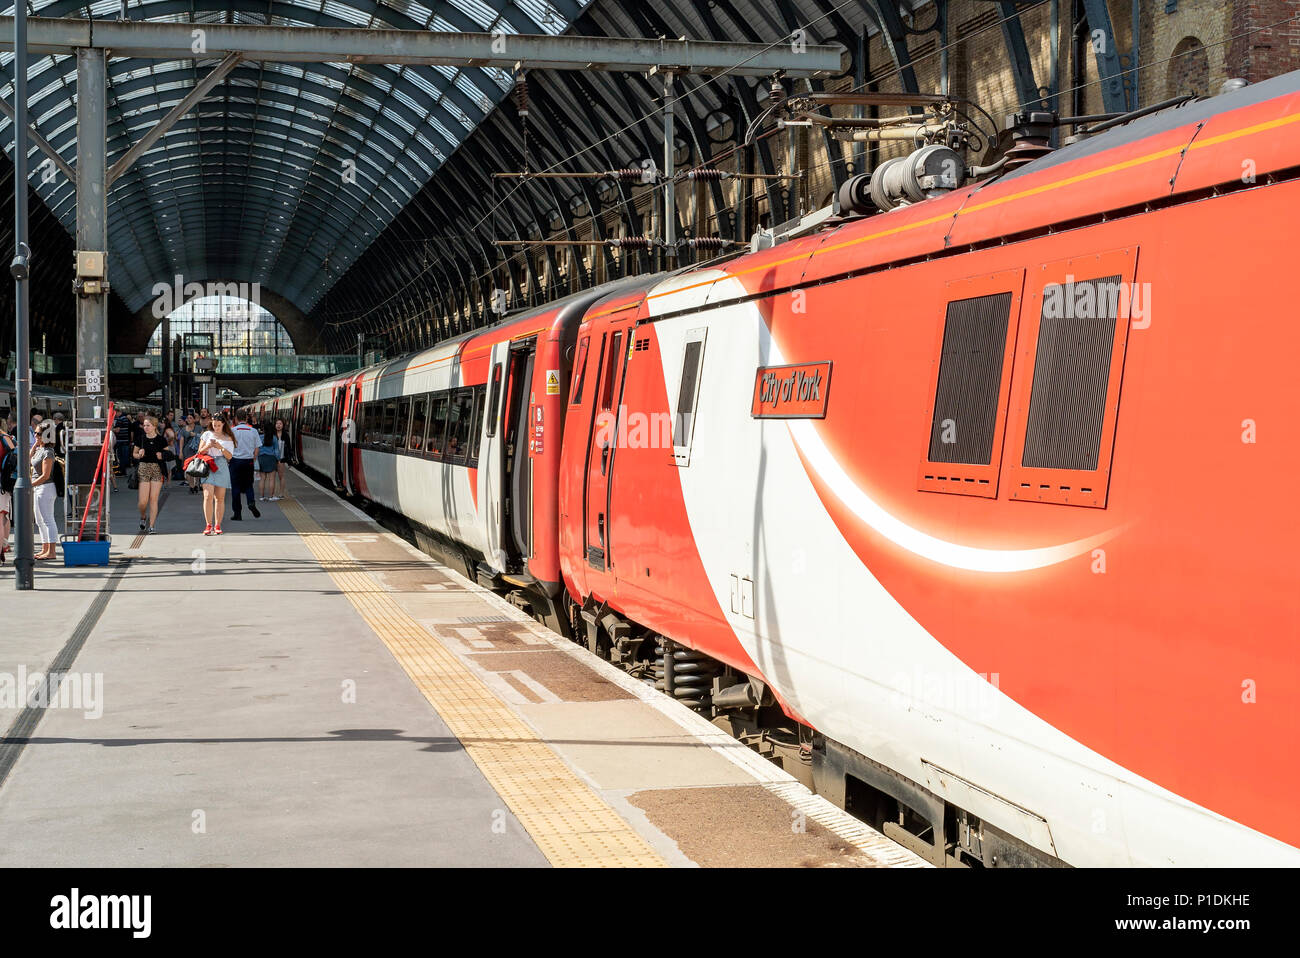 Passengers boarding a Virgin East Coast service at London Kings Cross. The UK Government has now taken control of this privatized route. - Stock Image